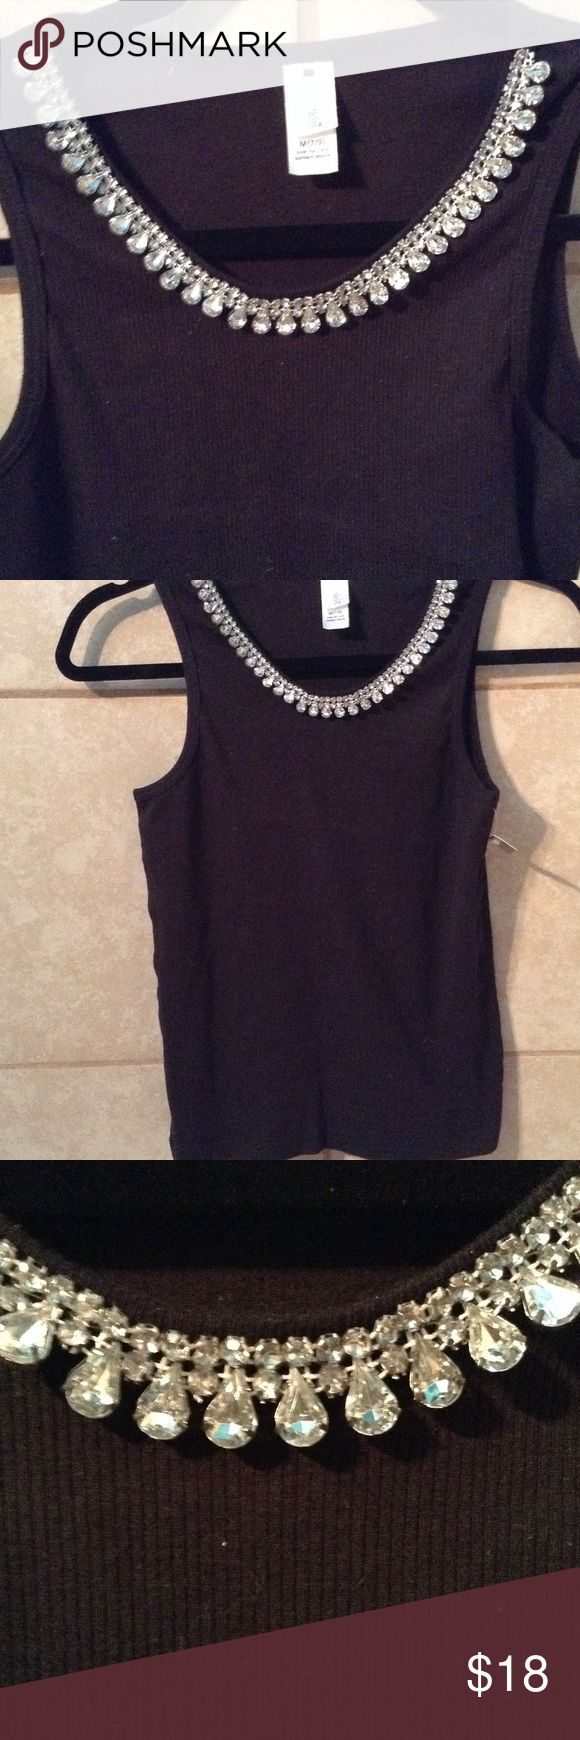 (NWT) VALENTINES Chrystal rhinestone wife beater 💯 cotton wife beater with rhinestone neckline.   Pretty for parties, dress up jeans or Valentines Day perfection! Tops